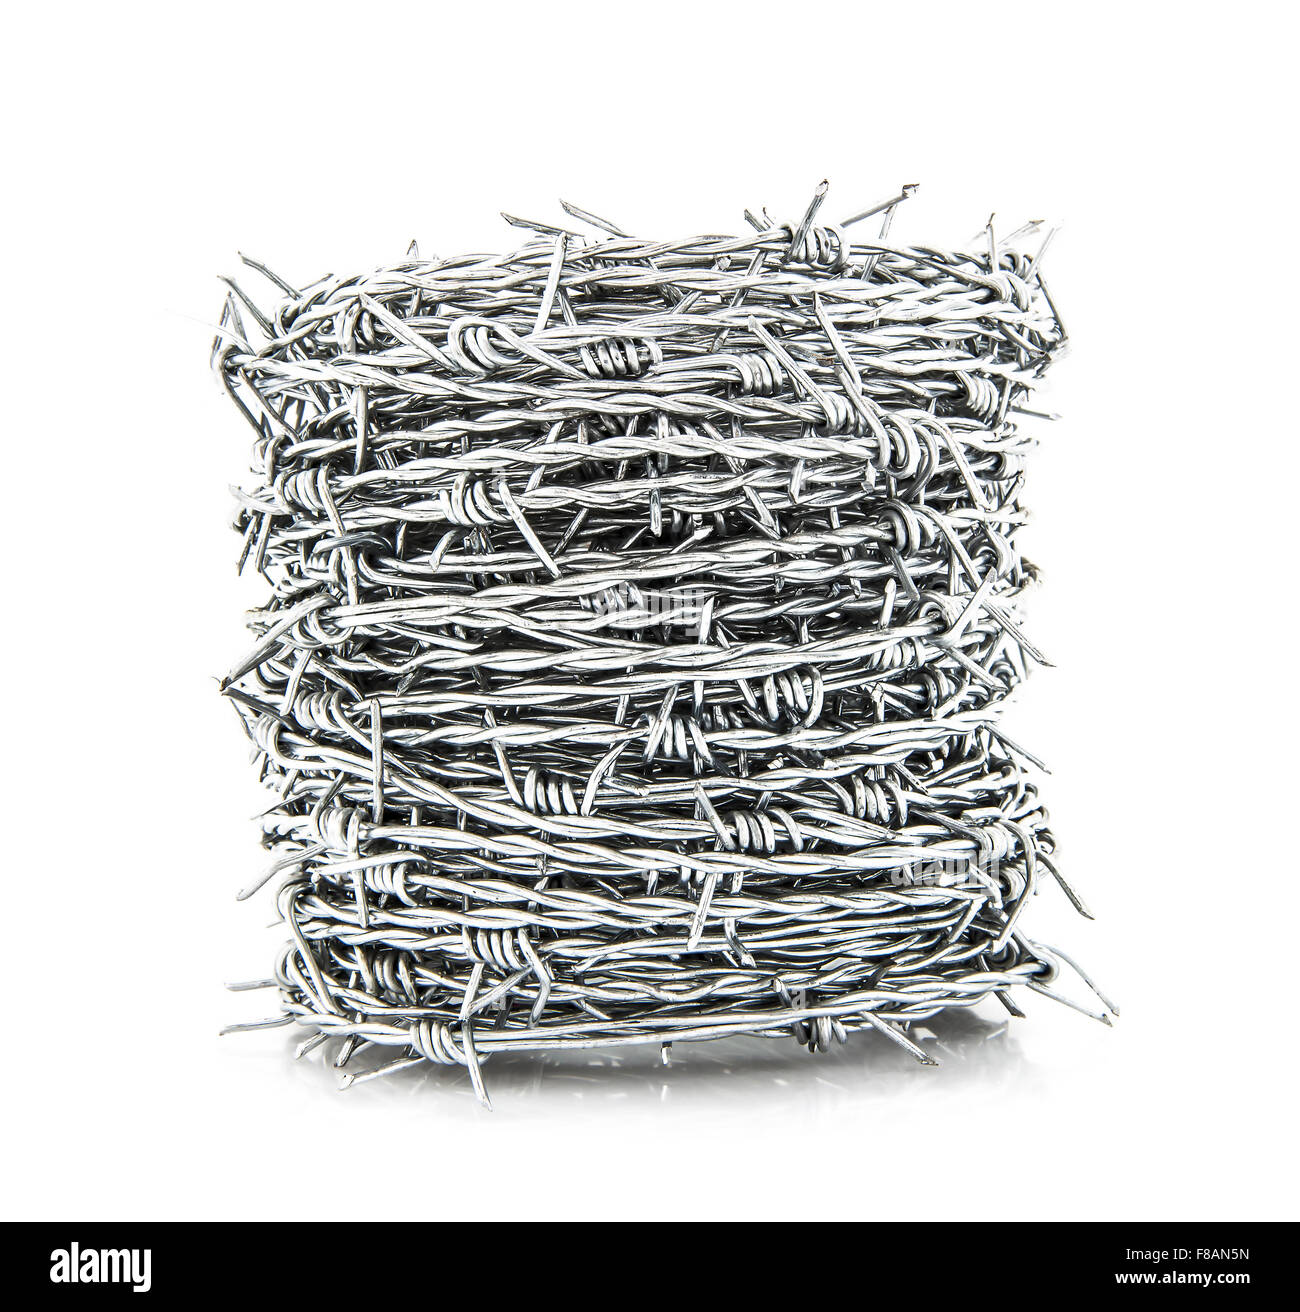 Coil of Barbed wire isolated on white background - Stock Image